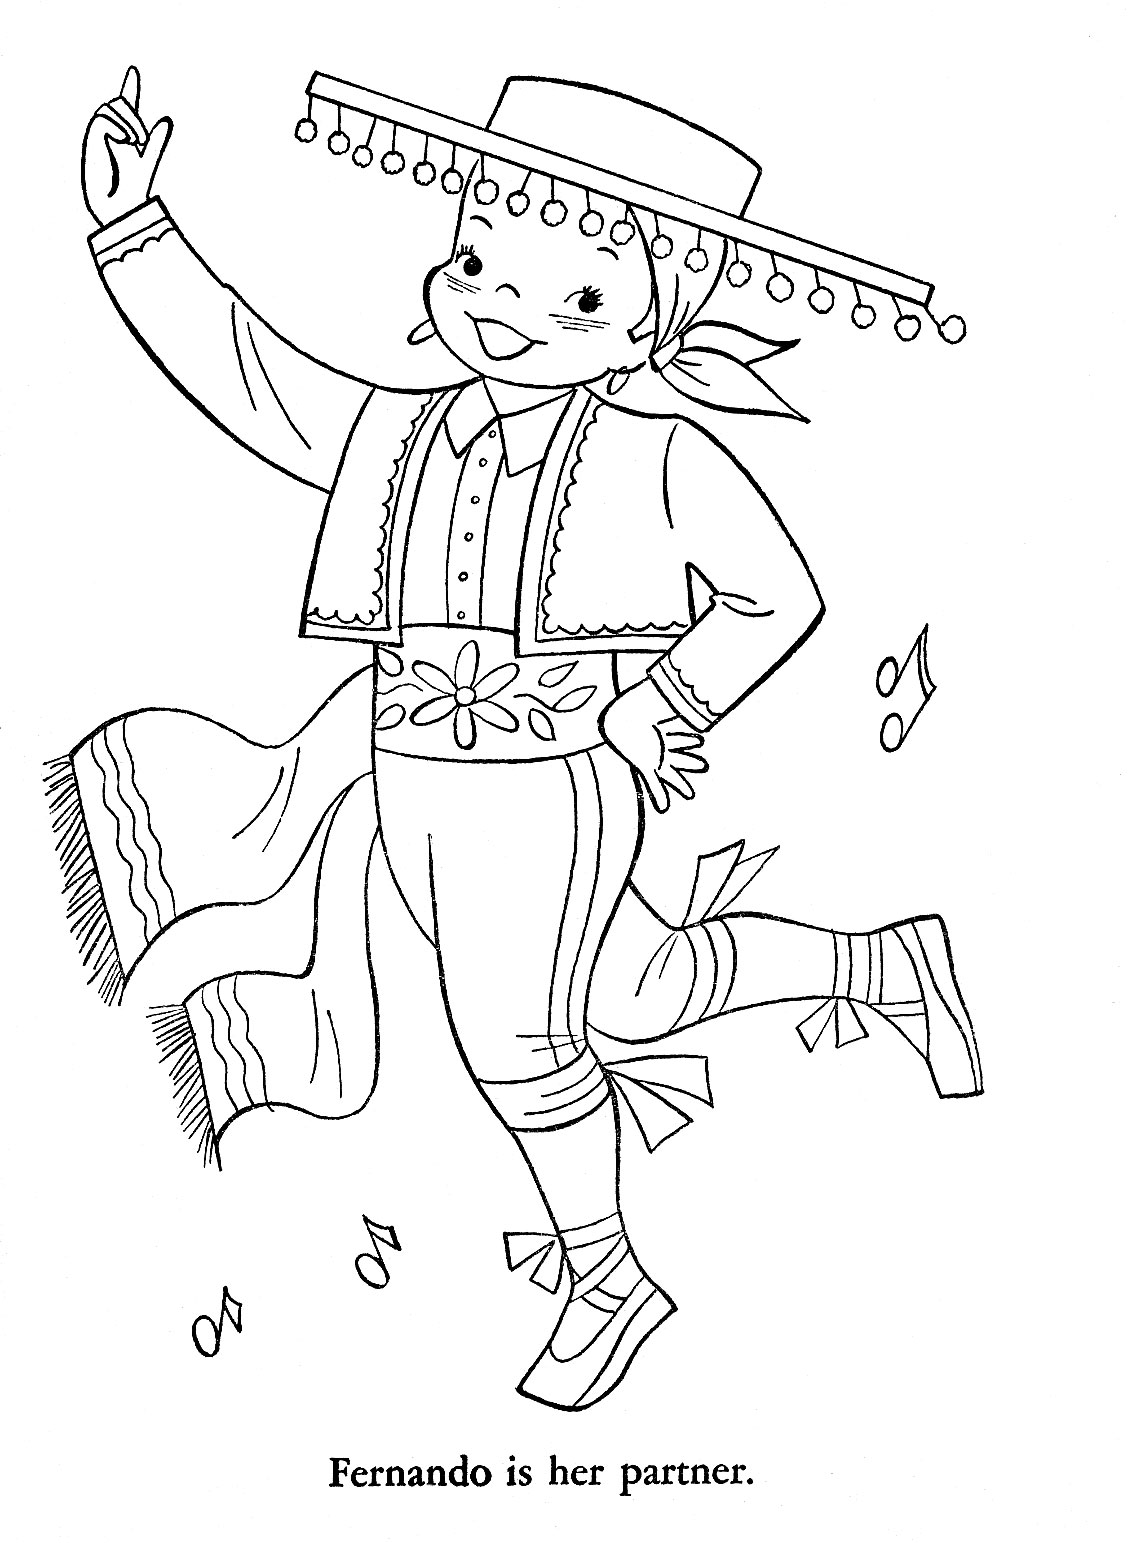 Egypt 1 art coloring pages for grownups pinterest for Spain coloring pages